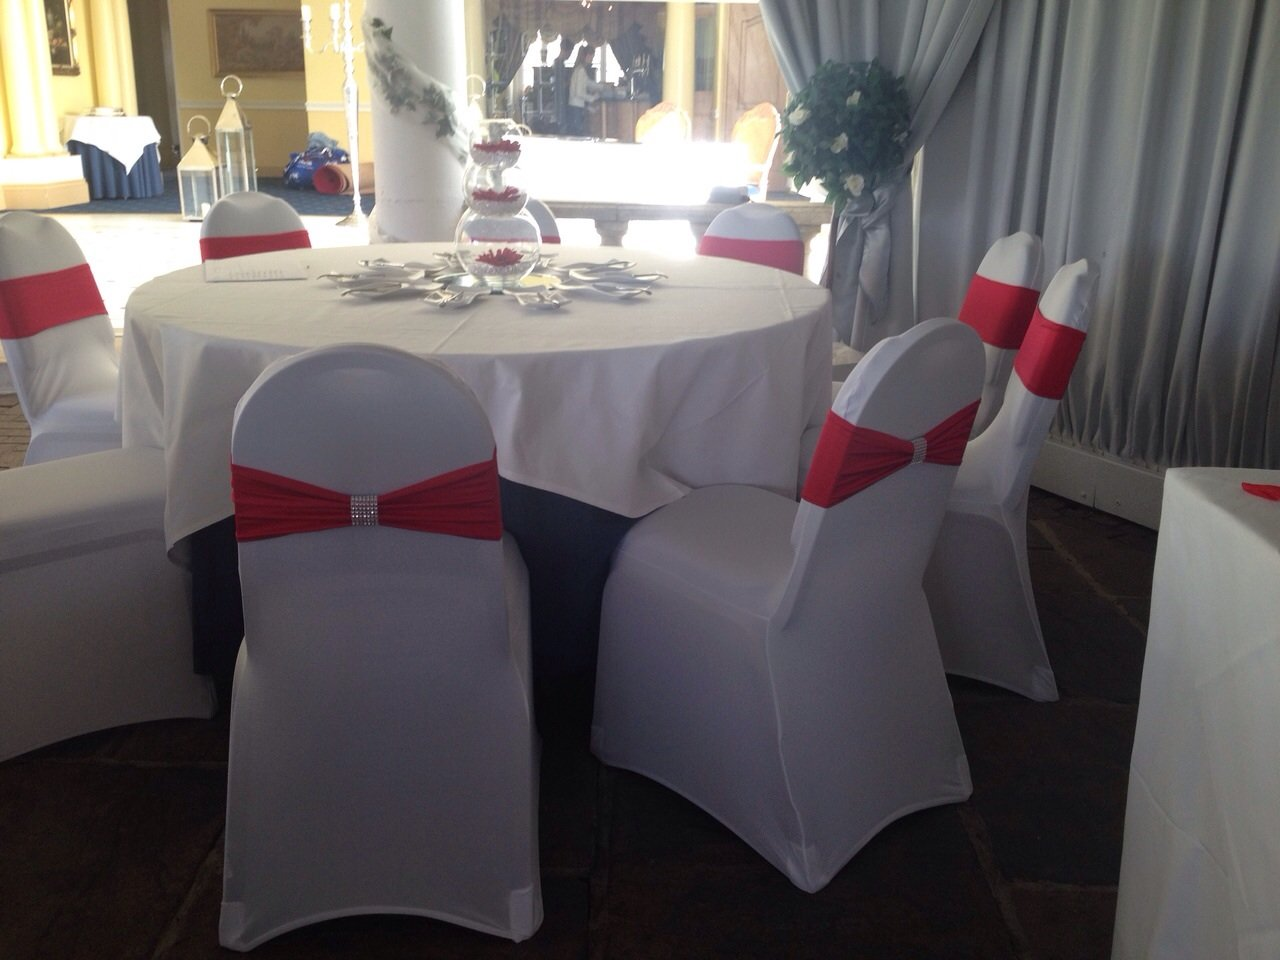 Red lycra band with bling wrap and white lycra chair covers at Friern Manor